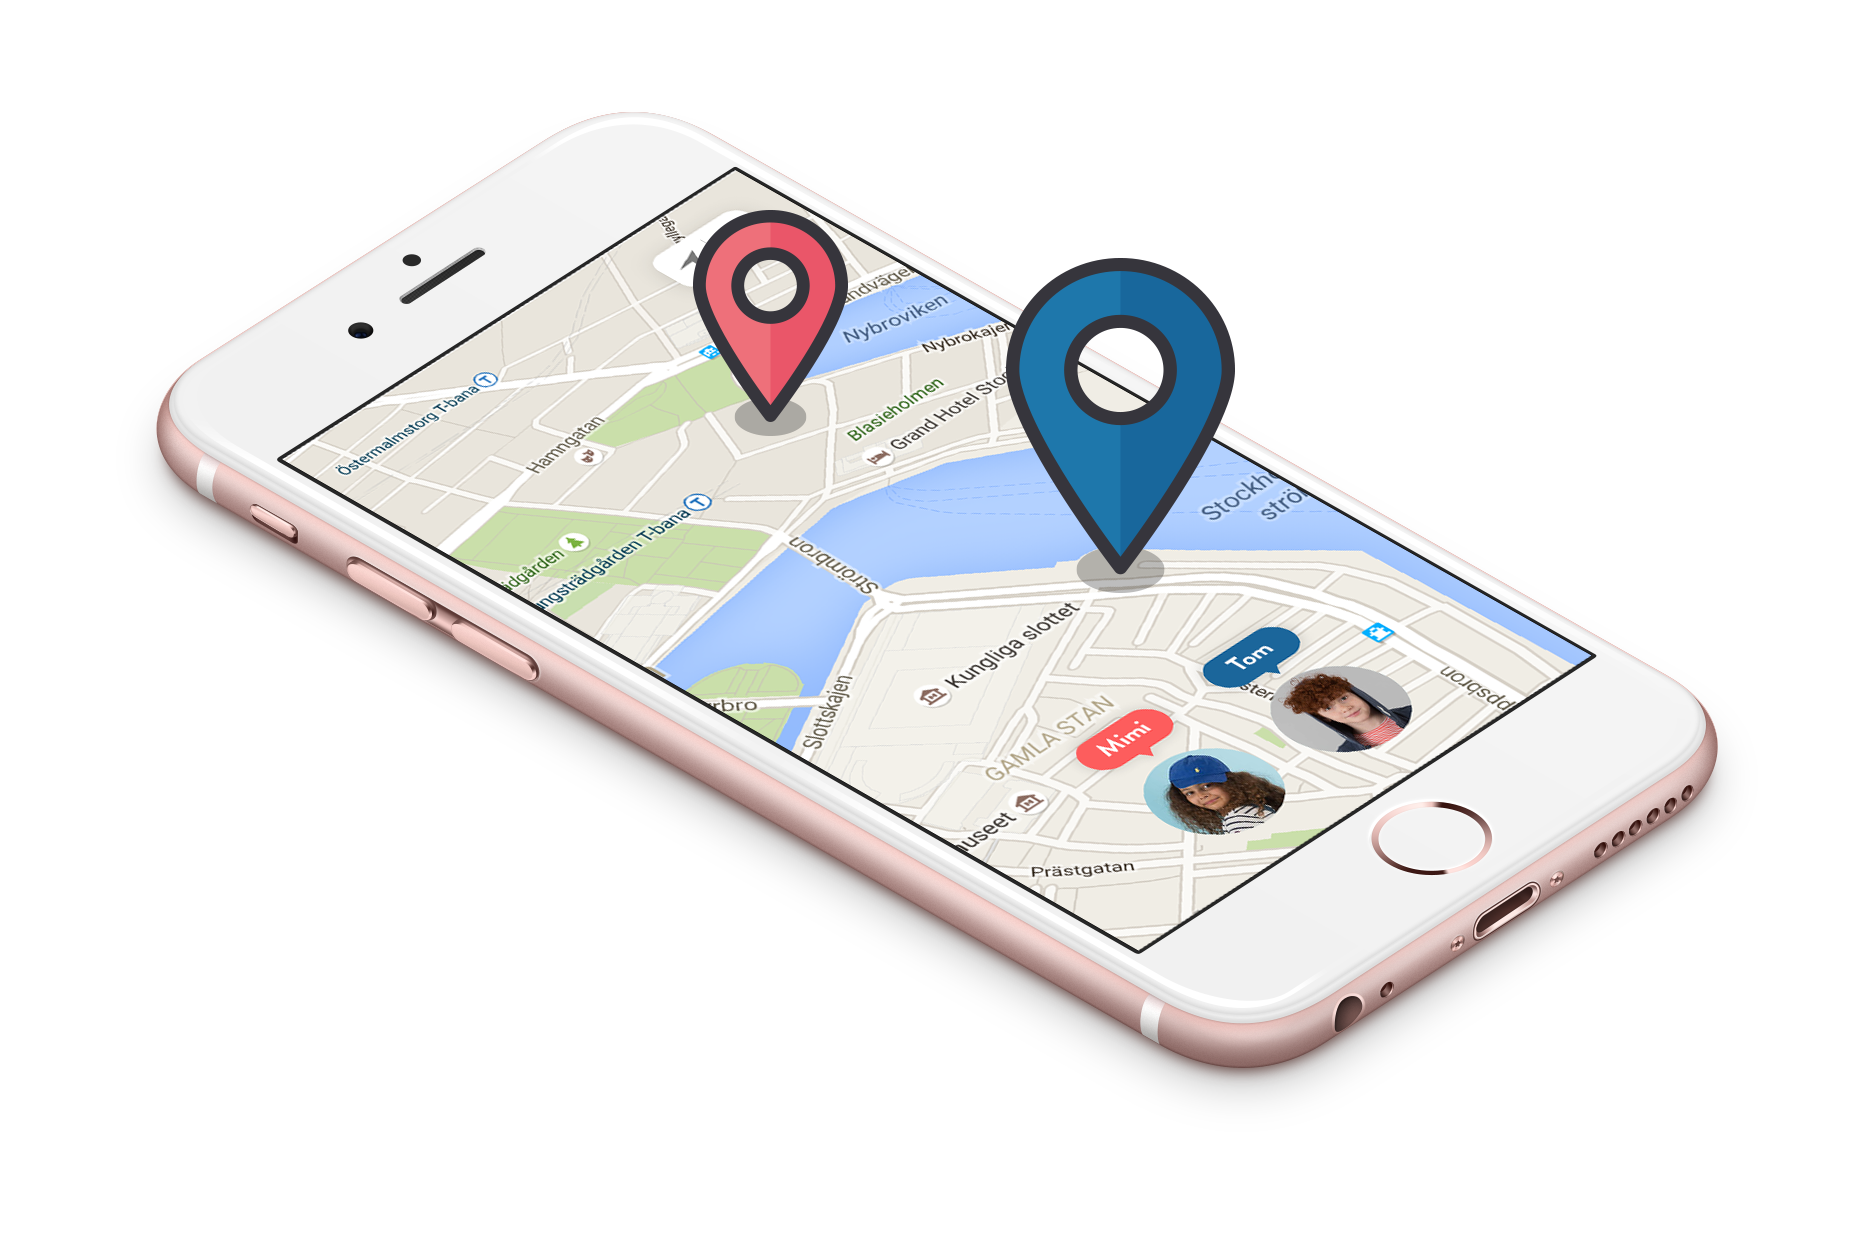 kisspng-gps-navigation-systems-iphone-mobile-phone-trackin-tracking-5ac24510781ef1.547953401522681104492